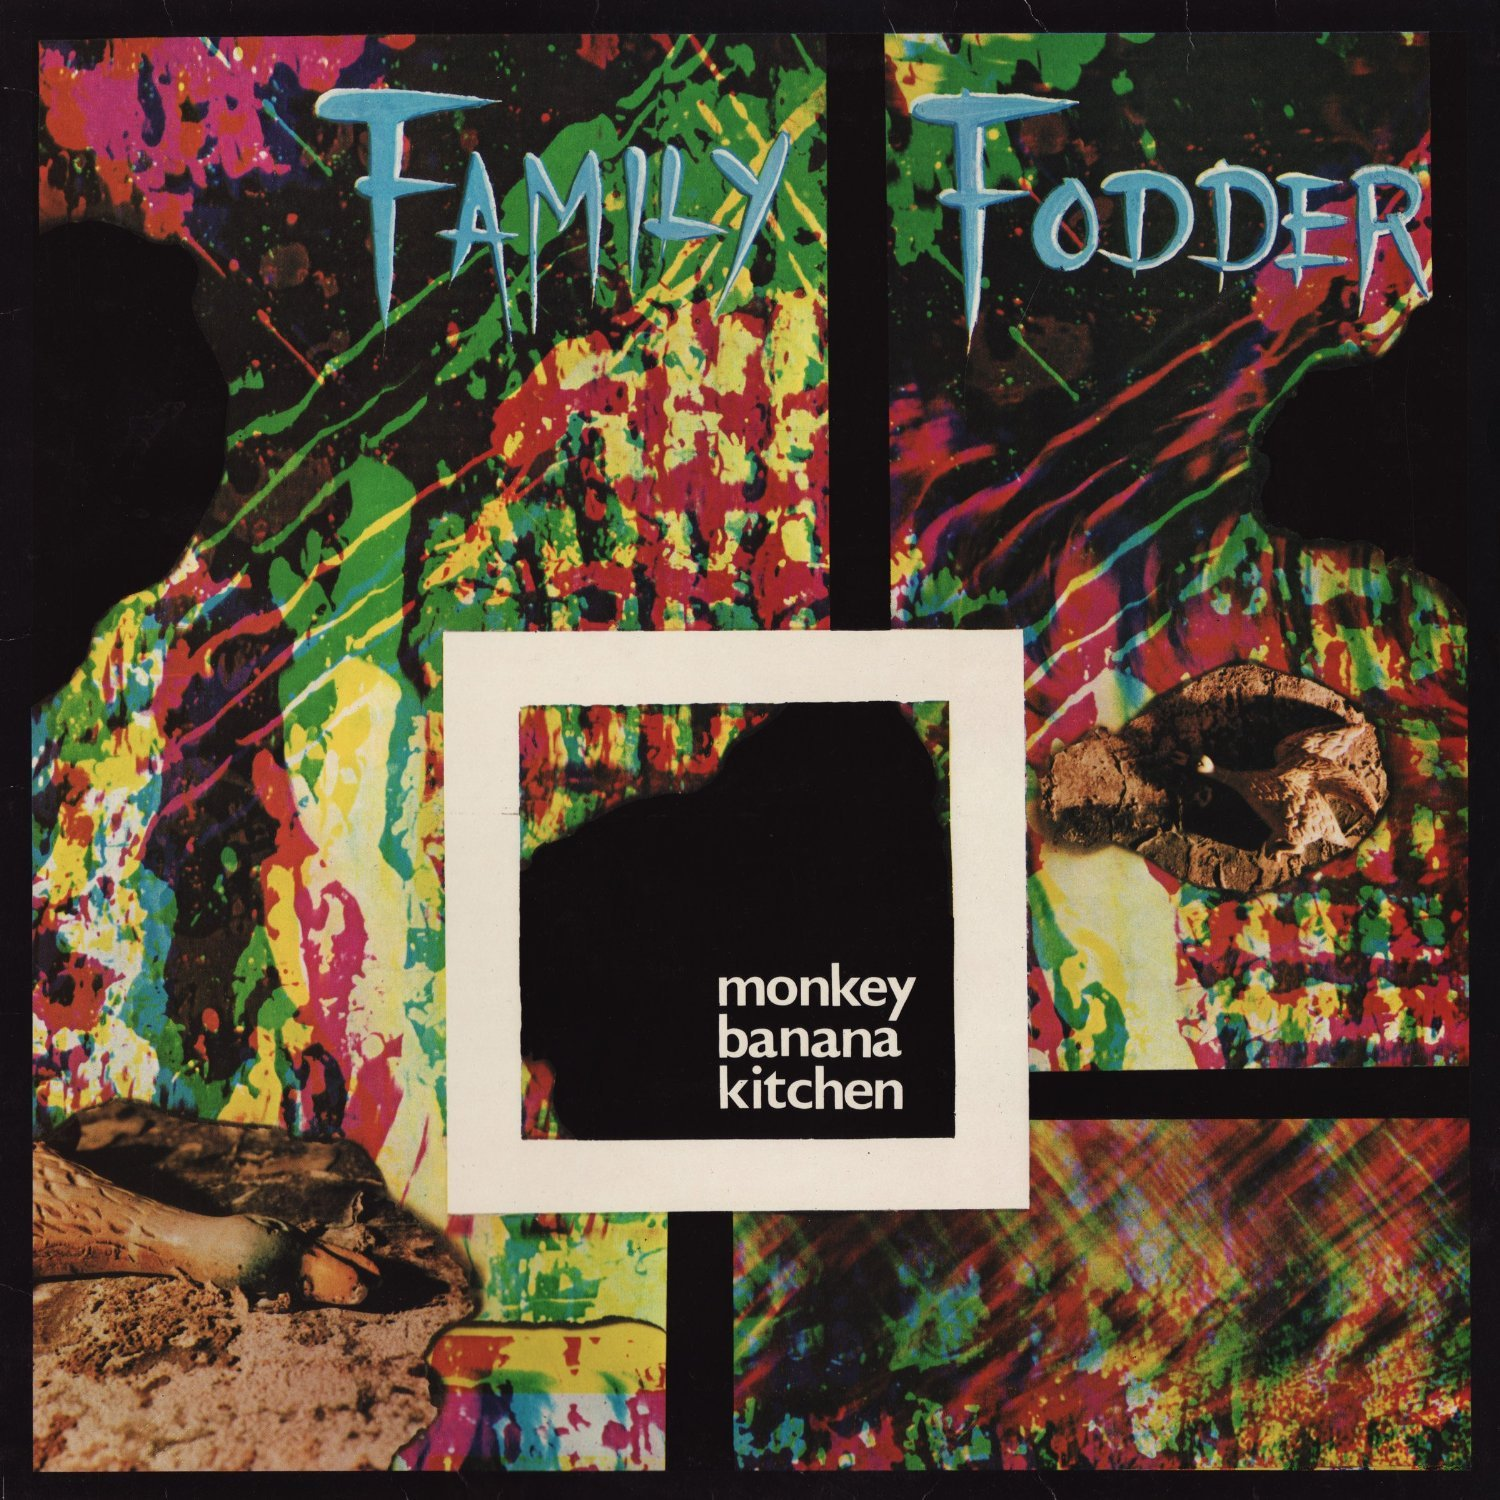 Monkey Banana Kitchen / Family Fodderのジャケット